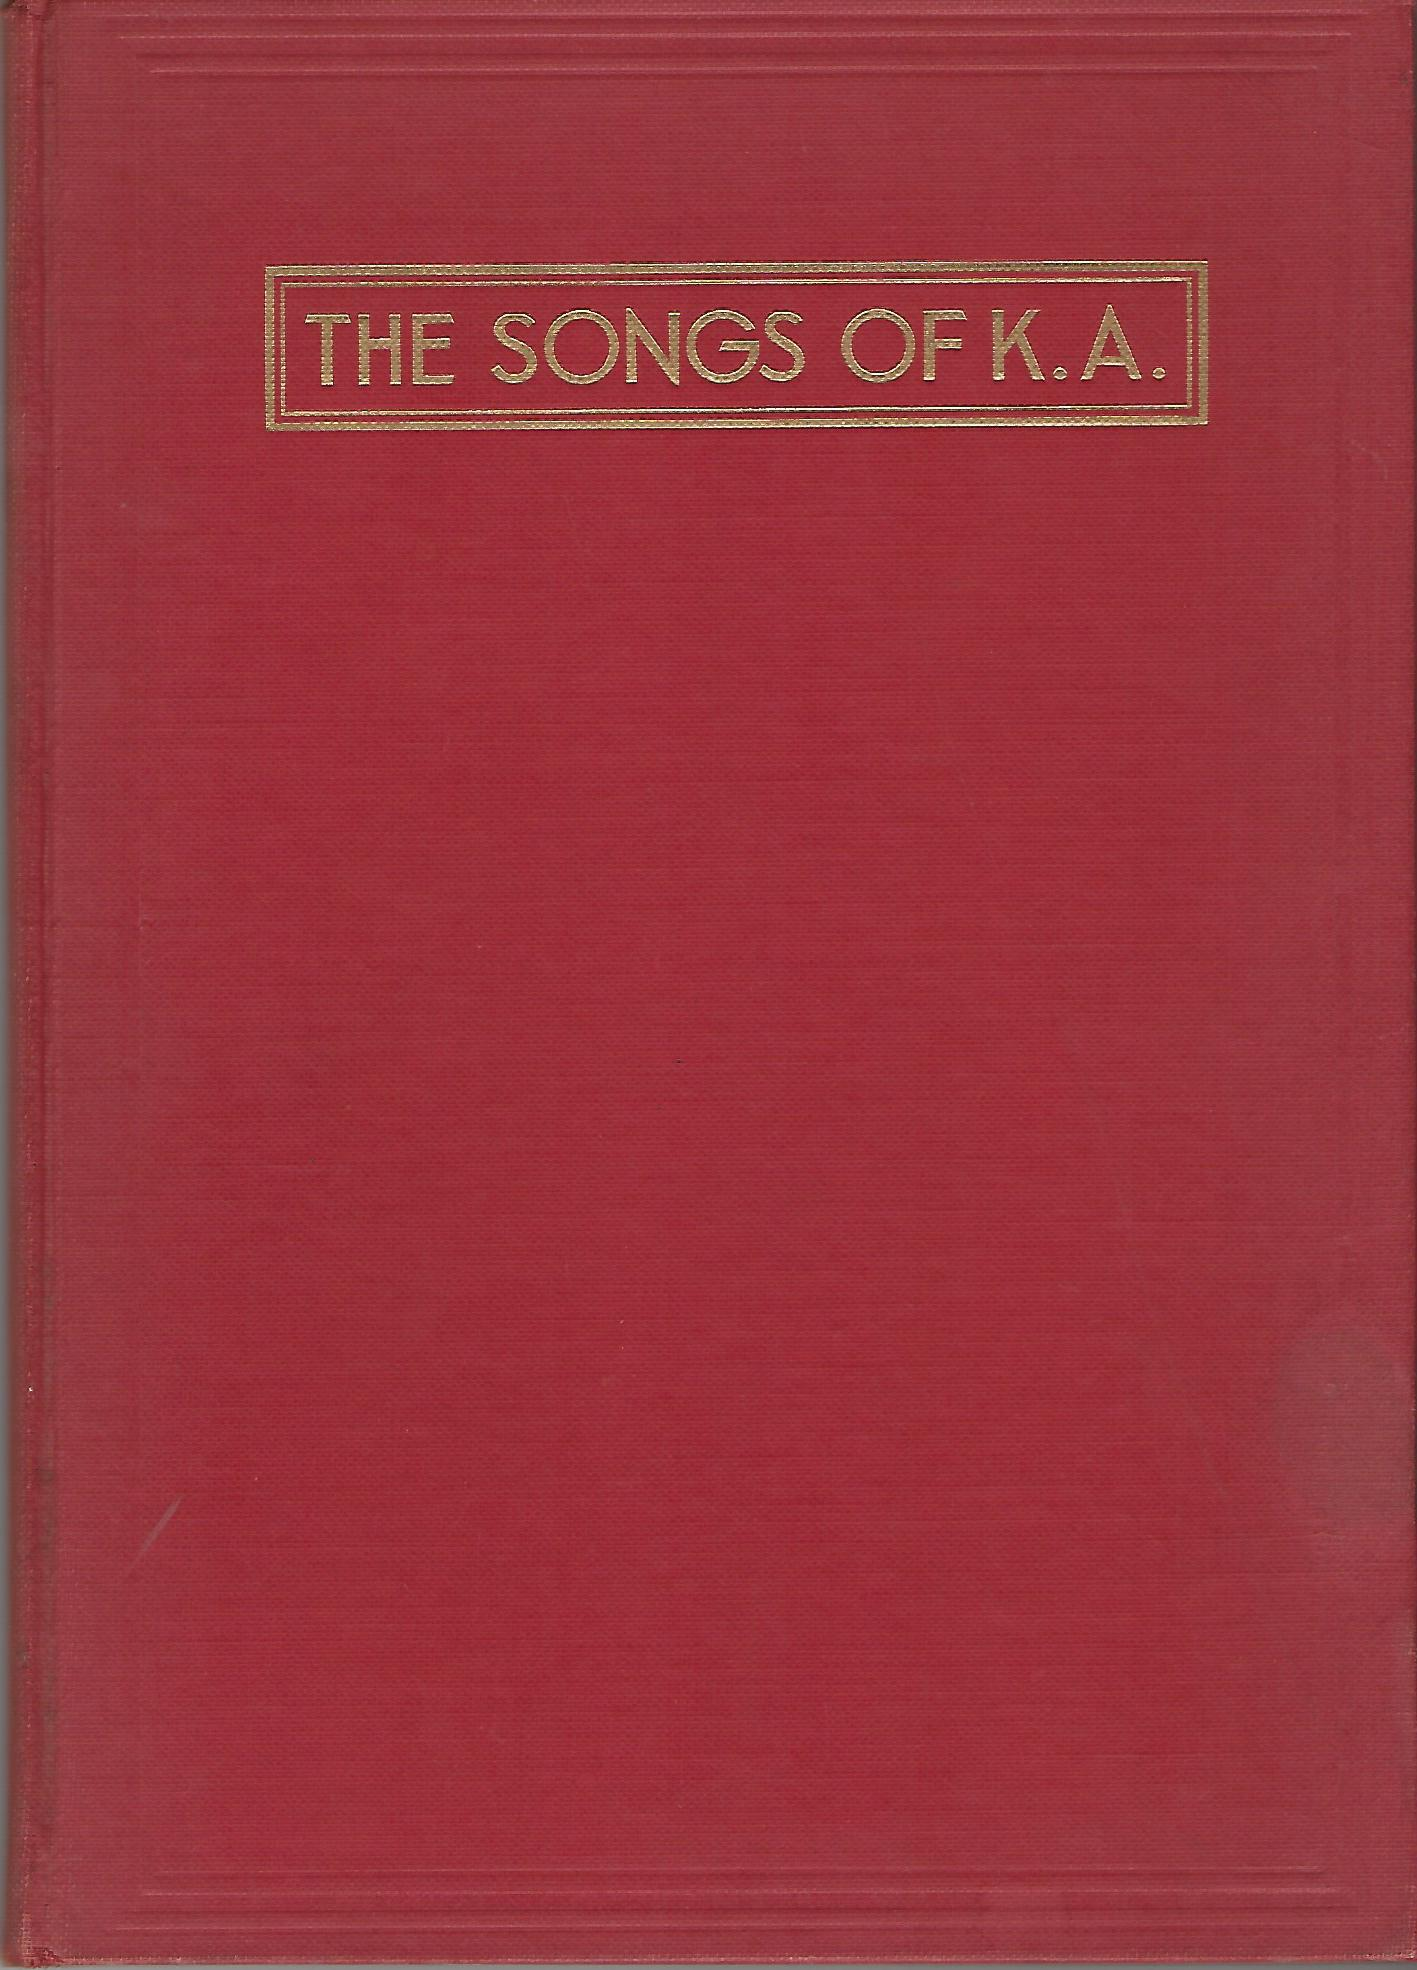 Image for The Songs of Kappa Alpha